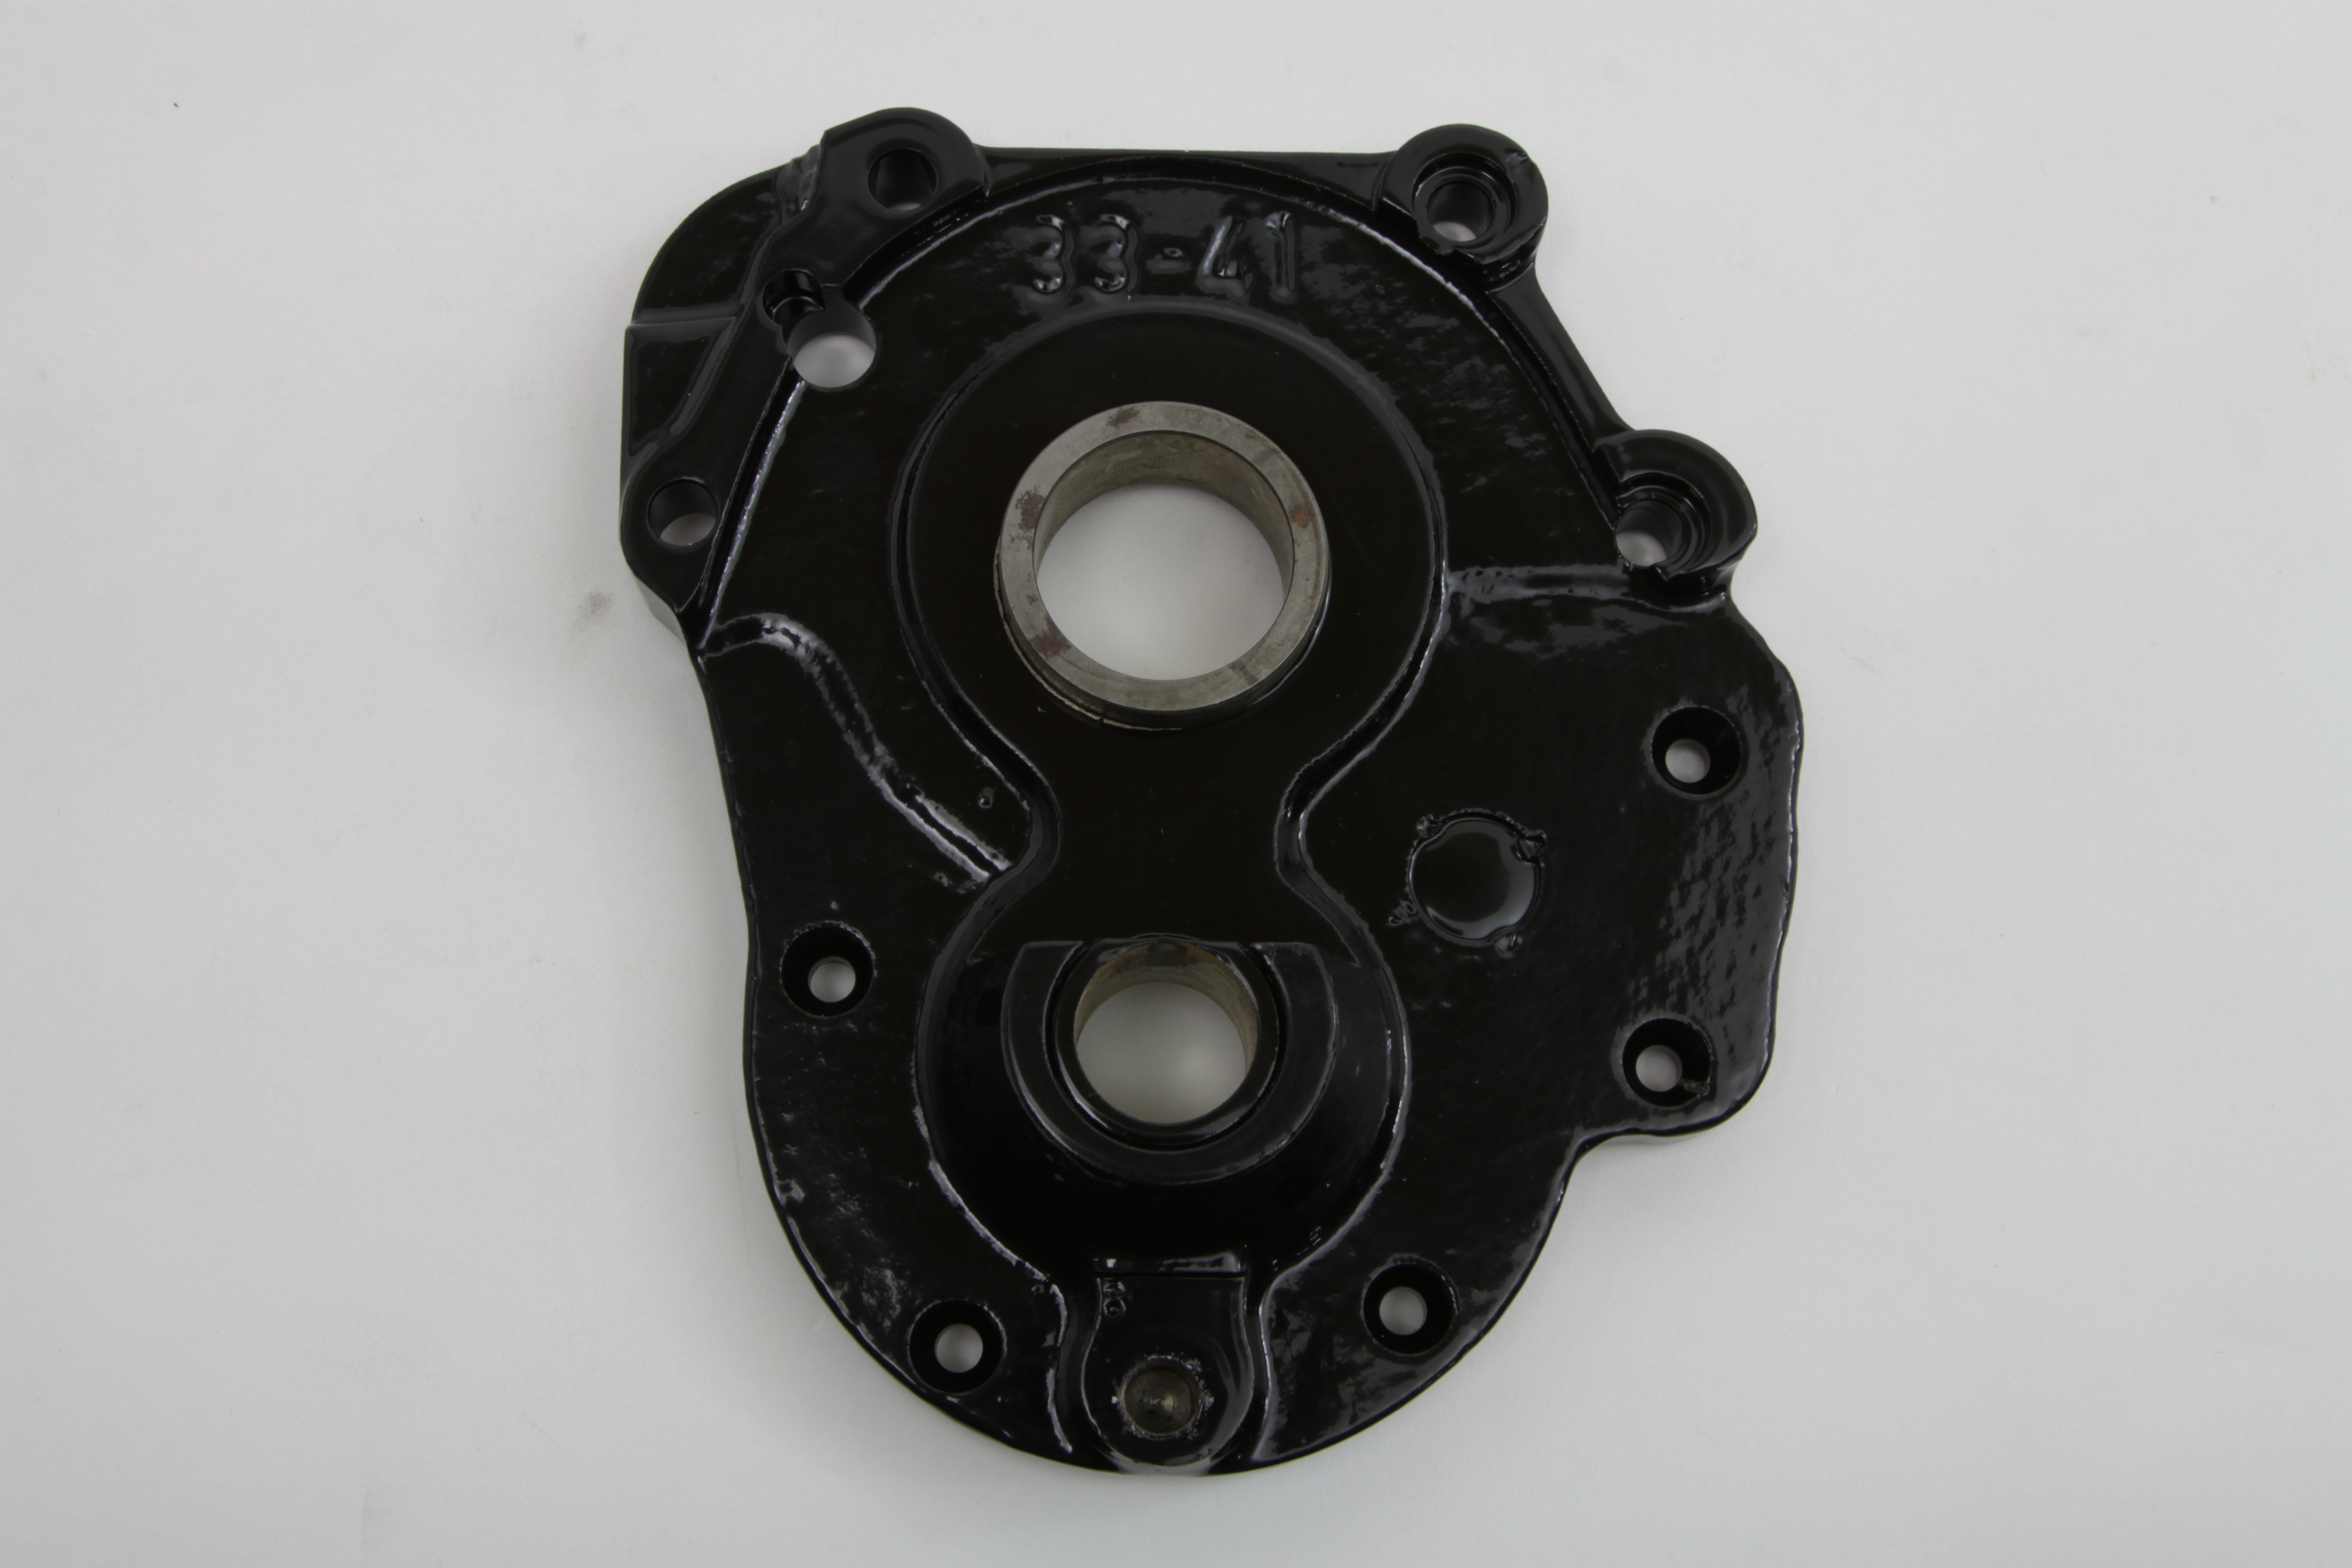 Transmission Side Cover for 4-speed Transmission Case